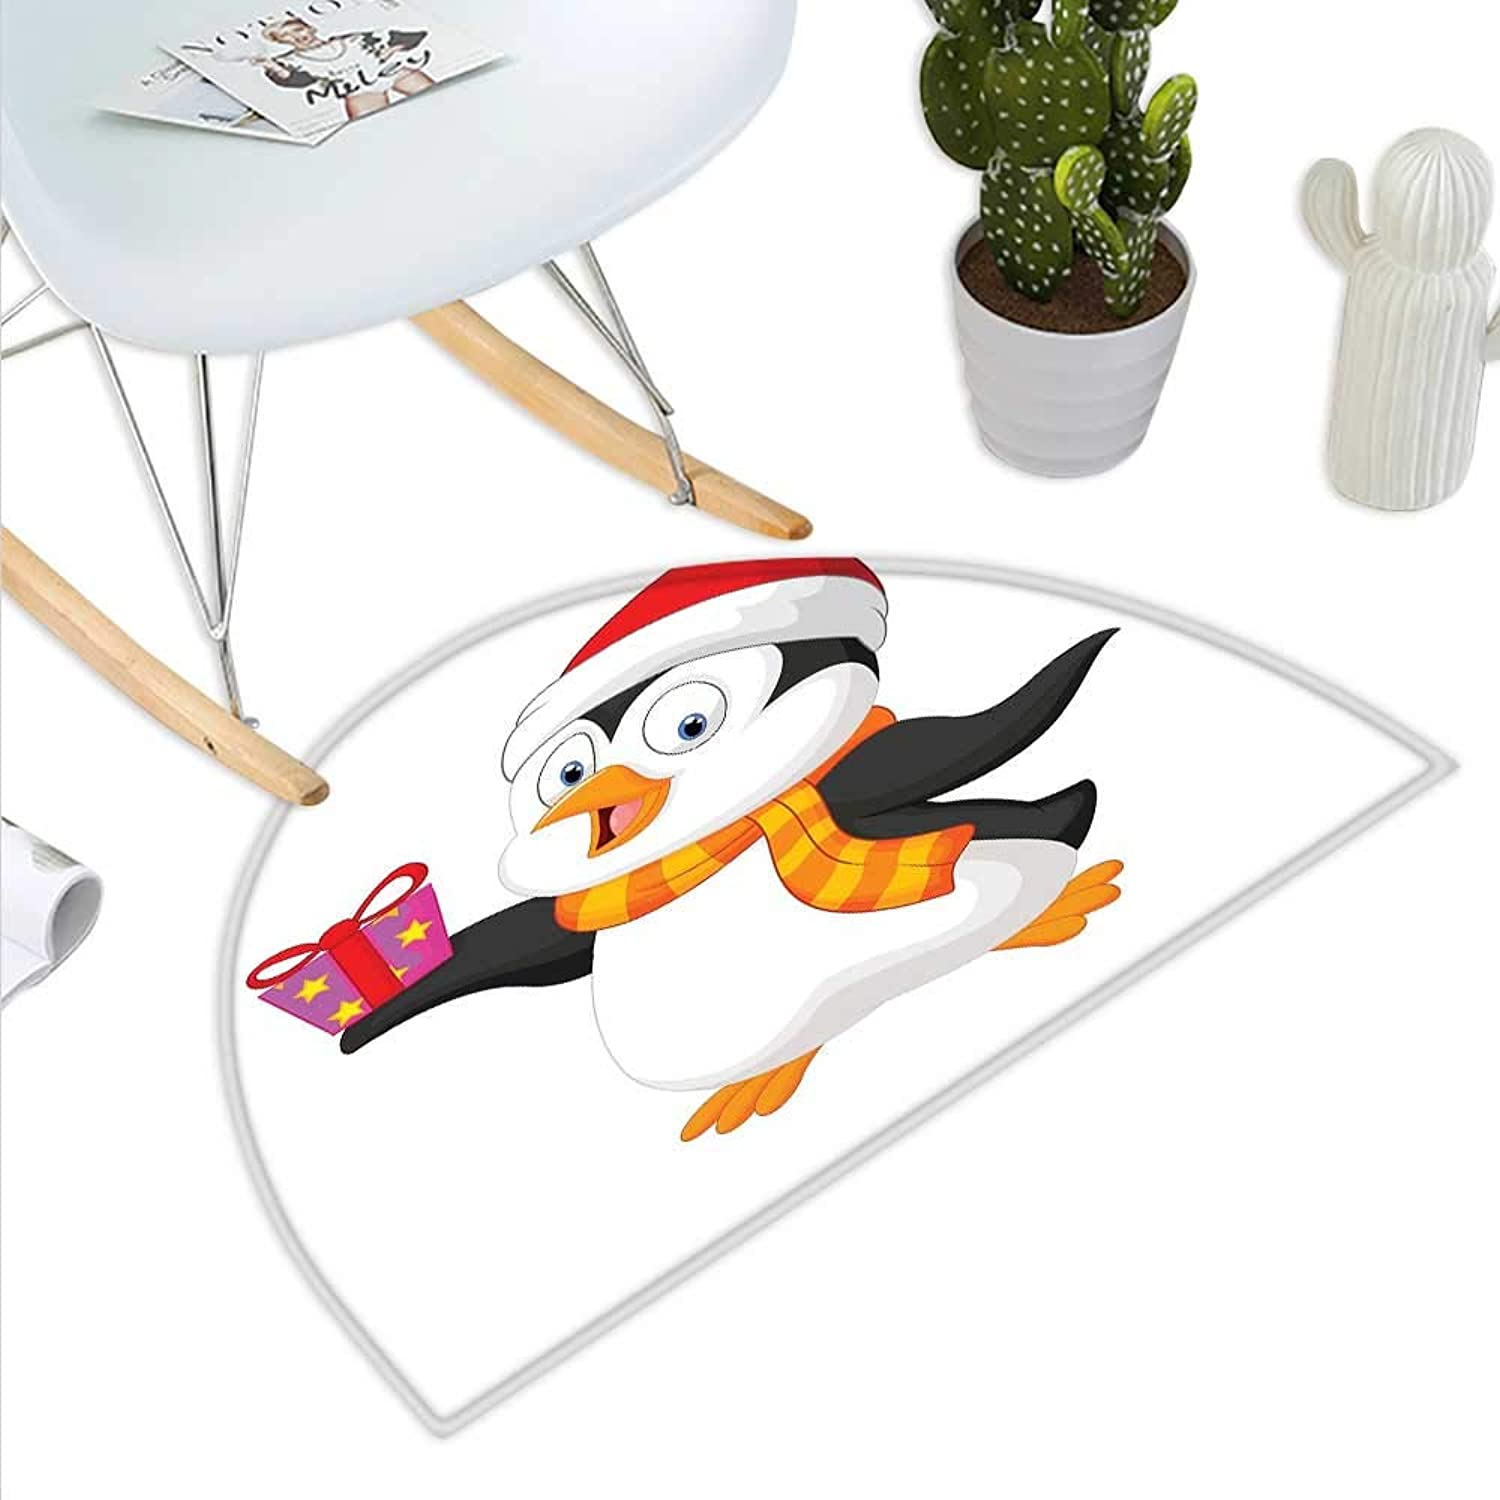 Baby Semicircle Doormat Friendly Penguin Character with Christmas Attire Holding an Ornate Box North Pole Halfmoon doormats H 39.3  xD 59  Multicolor